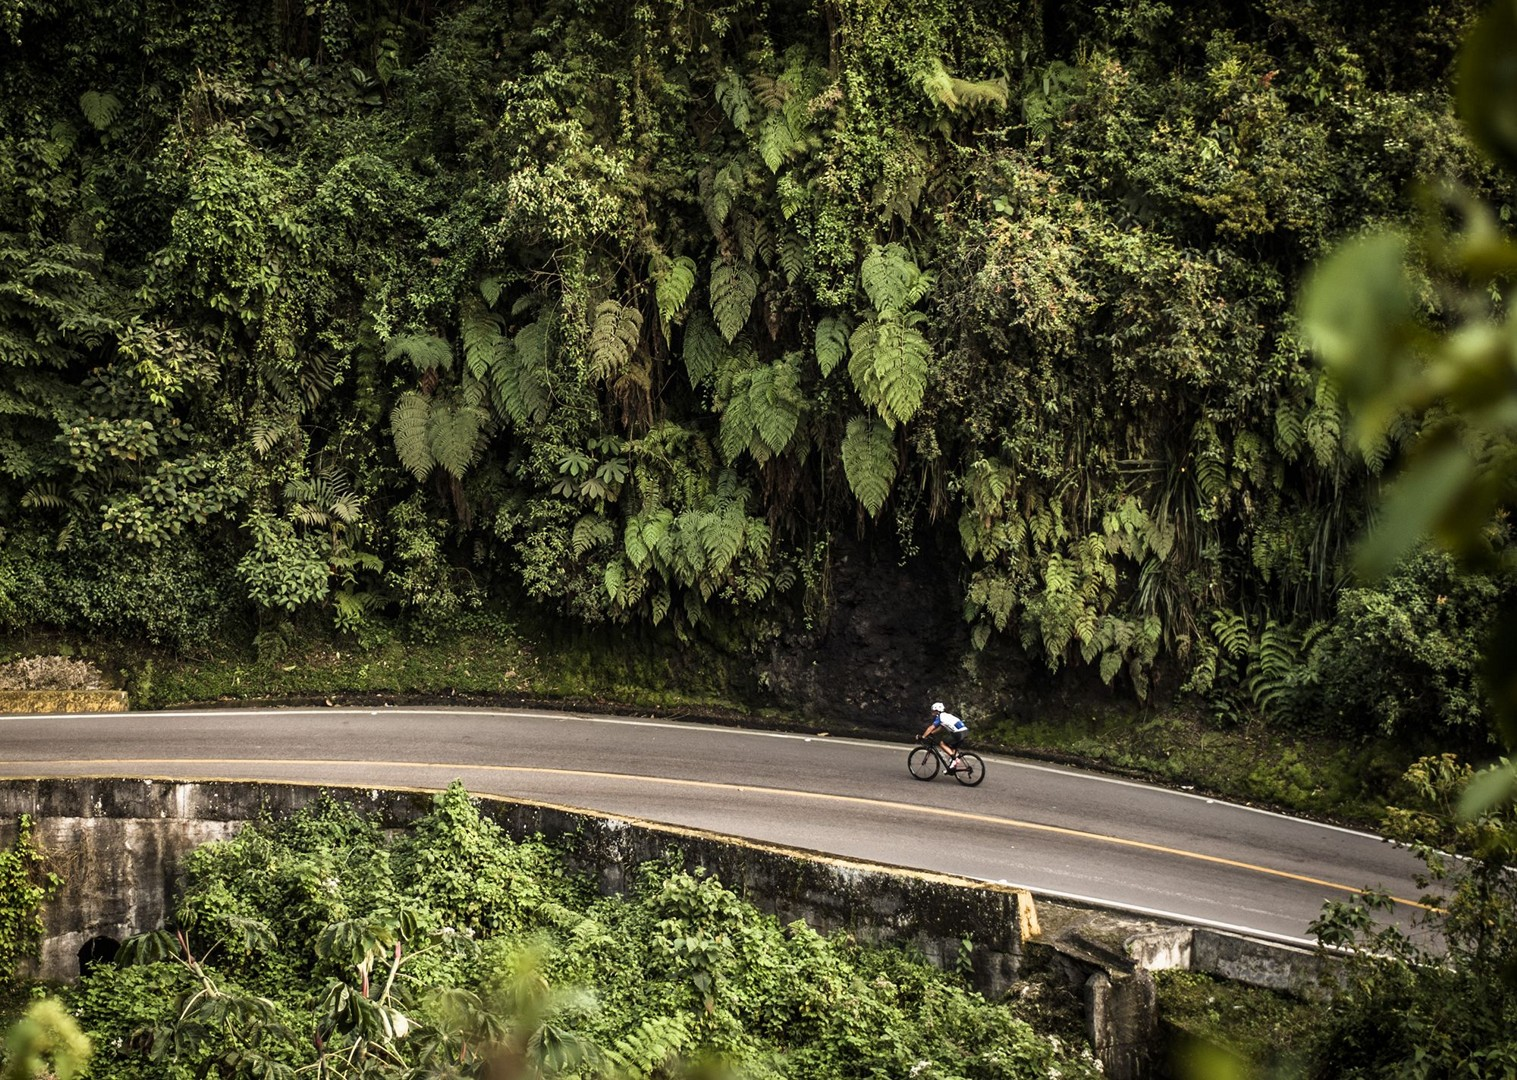 day_4_053.jpg - Colombia - Emerald Mountains - Road Cycling